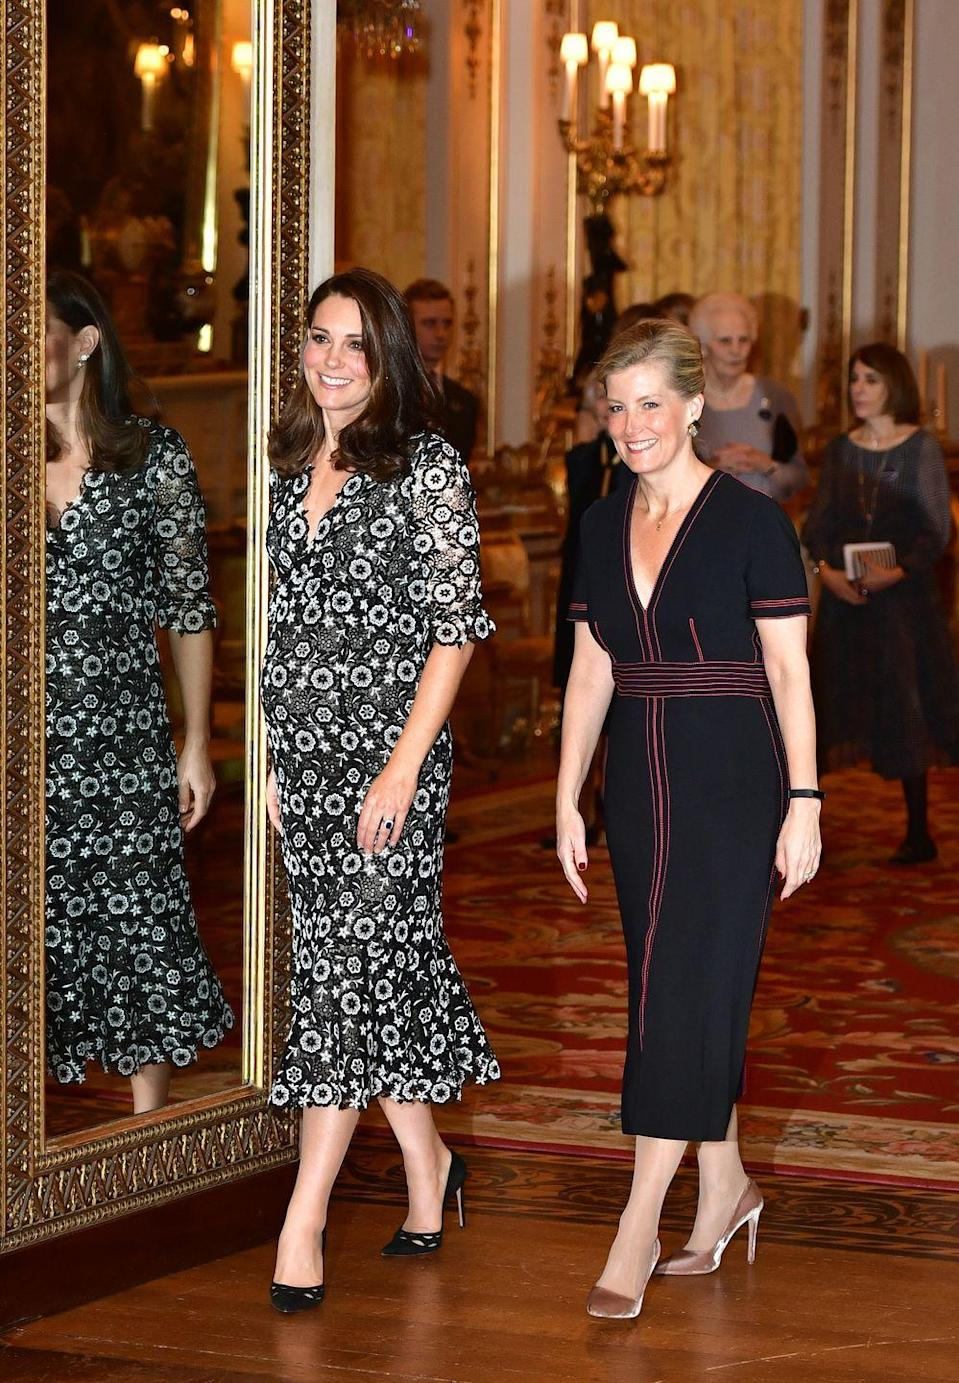 """<p>The day after her controversial wardrobe choice for the BAFTA Awards, the Duchess stepped out in a <span class=""""redactor-unlink"""">black-and-white Erdem dress</span> to co-host the Commonwealth Fashion Exchange reception. Having received tons of <a href=""""https://www.marieclaire.com/celebrity/a18246917/kate-middleton-black-erdem-baftas-controversy/"""" rel=""""nofollow noopener"""" target=""""_blank"""" data-ylk=""""slk:backlash from Twitter"""" class=""""link rapid-noclick-resp"""">backlash from Twitter</a>, people couldn't help but wonder if her mostly-black dress was meant as a symbol, thus sparking more controversy.</p>"""